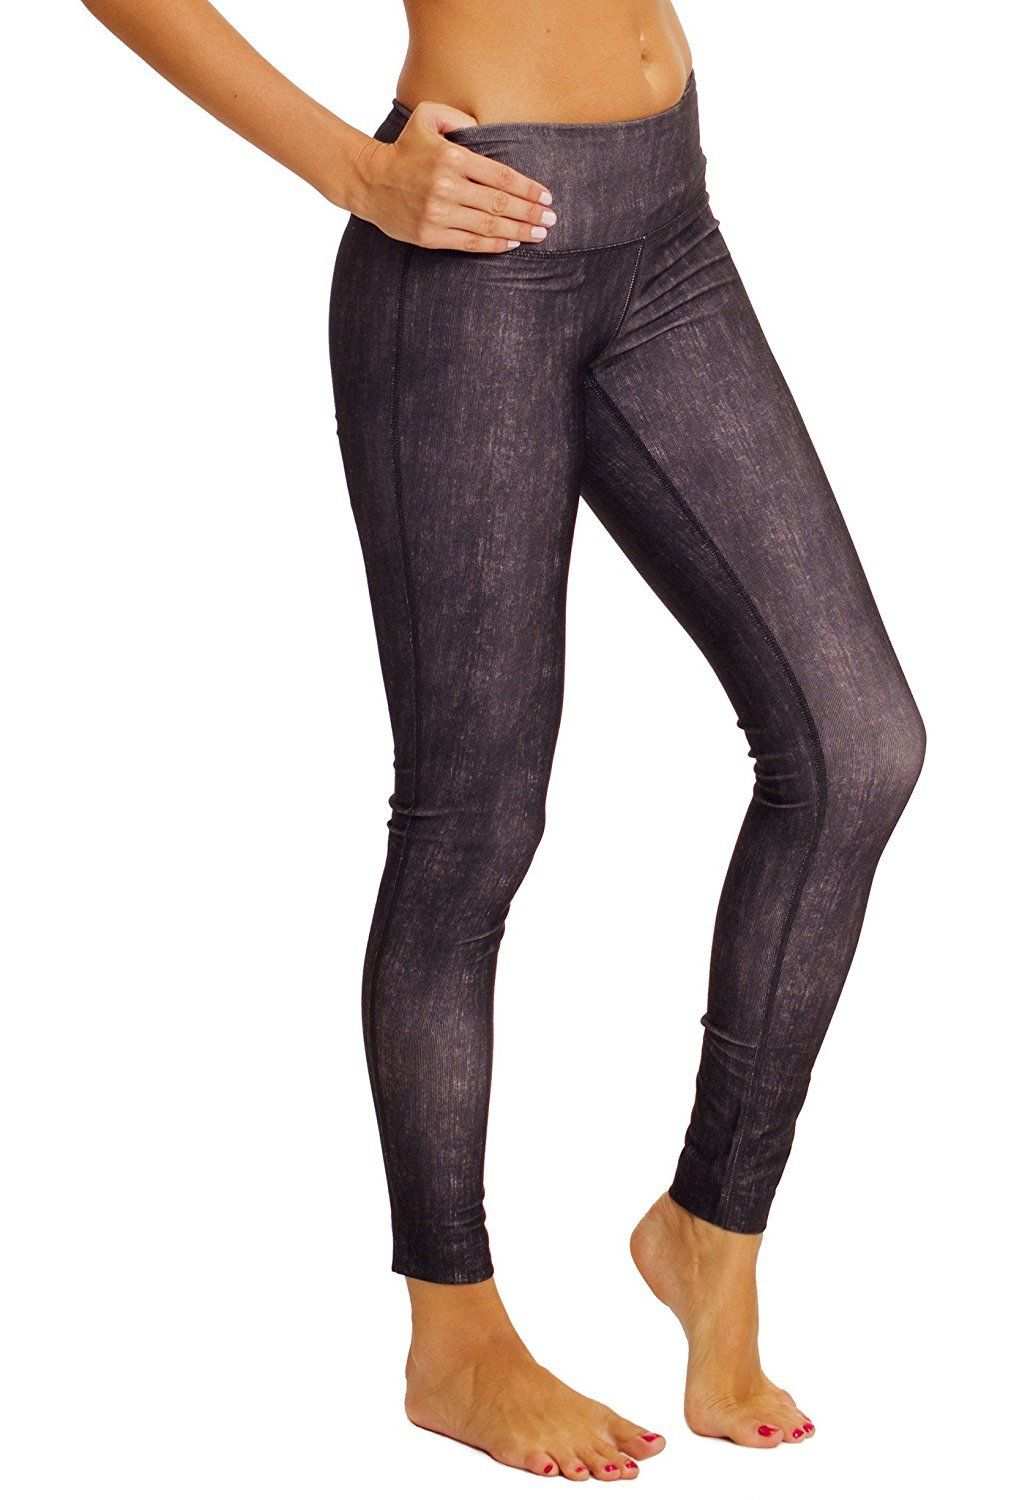 Size XS 90 Degrees by Reflex Ankle Leggings in Black